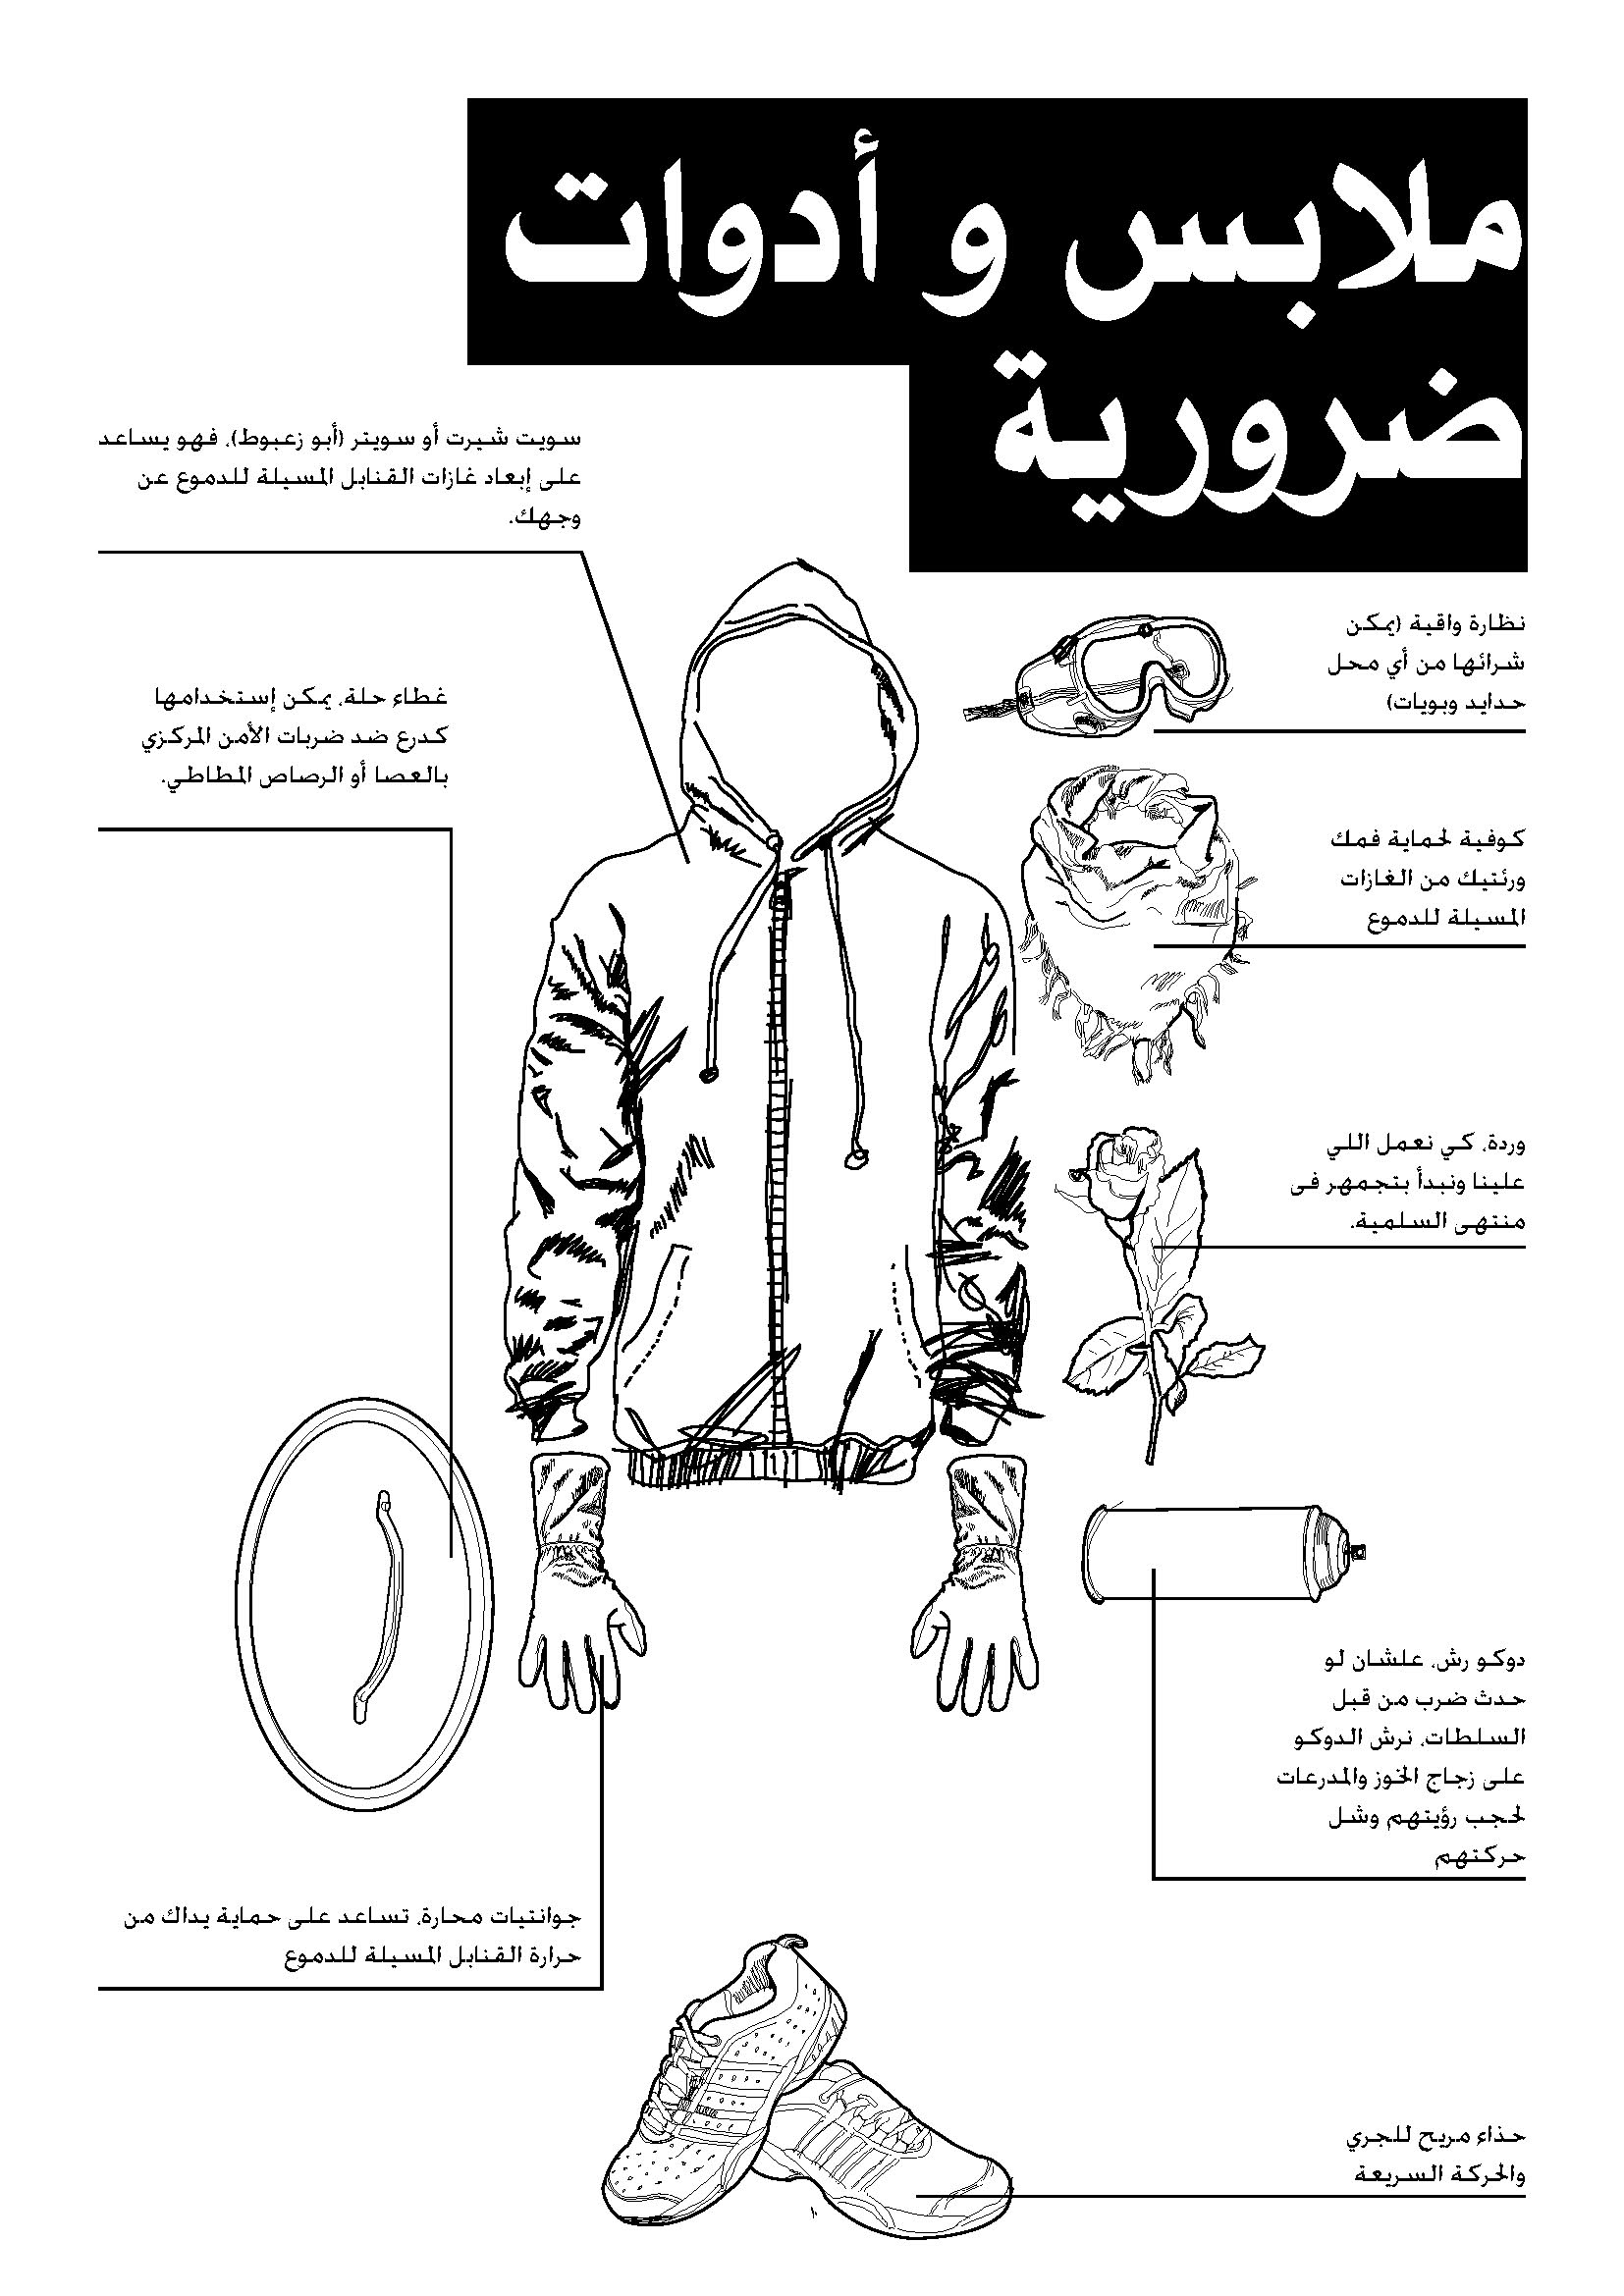 Egyptian Revolution Protest Manual (How to Protest